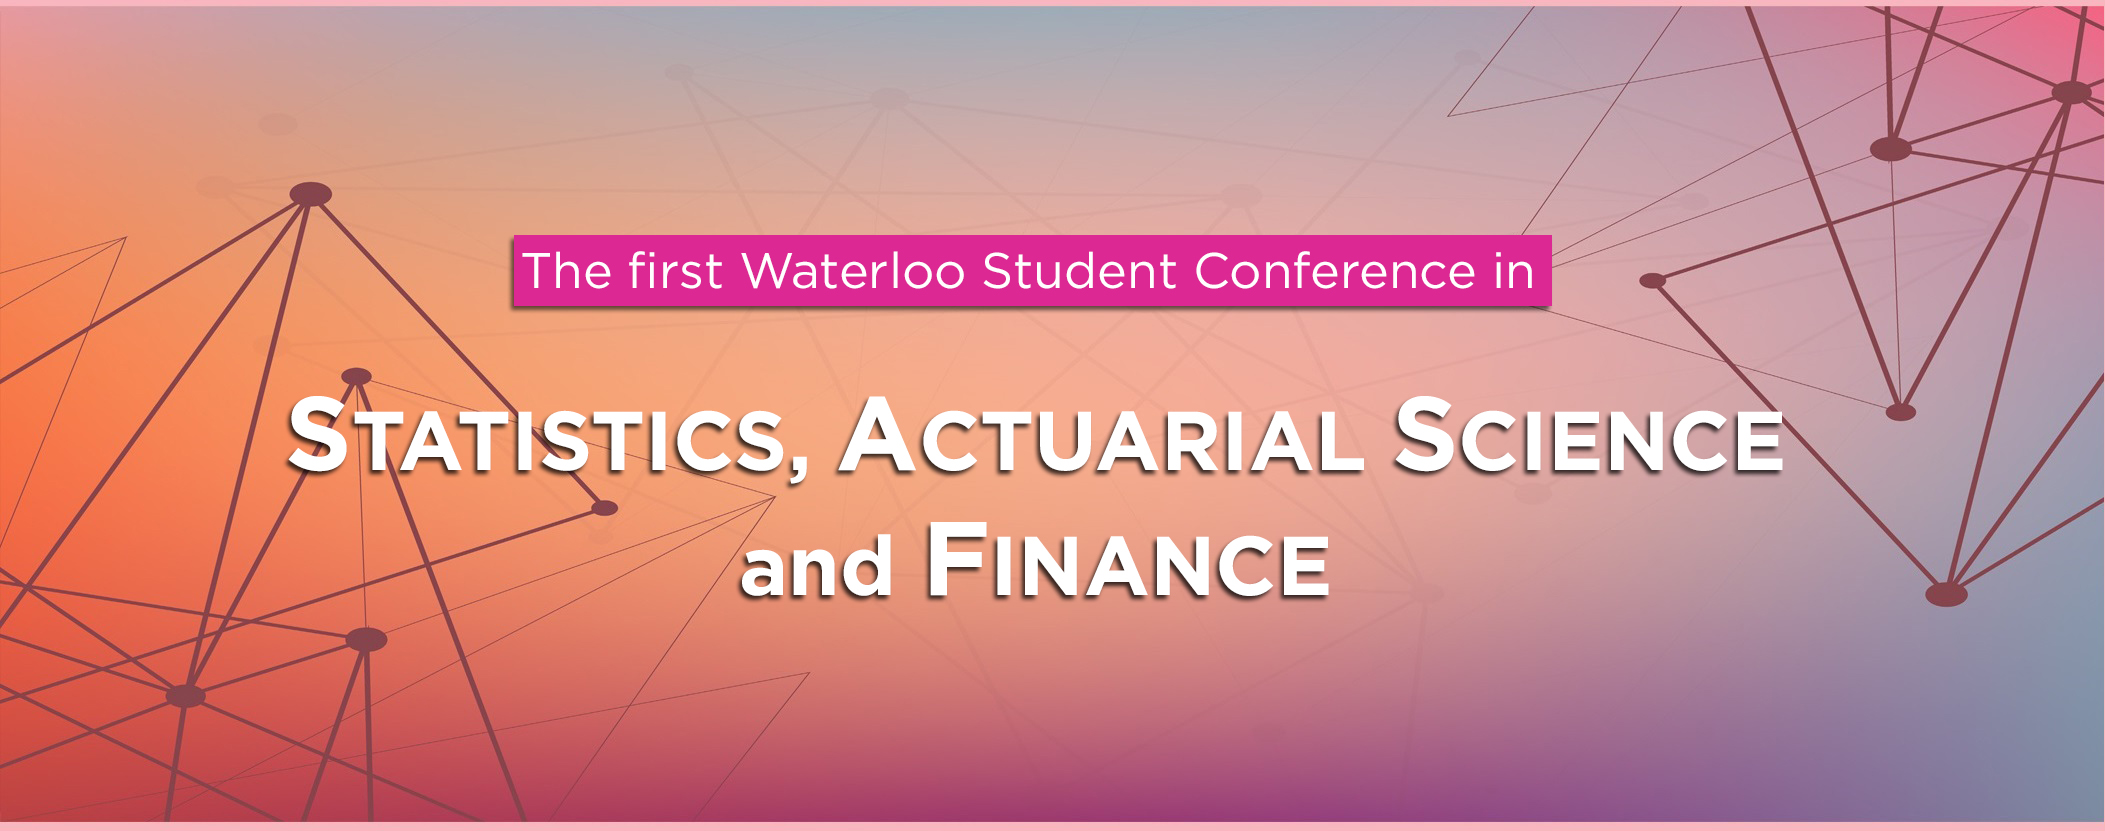 First student conference in Statistics, Actuarial Science, and Finance